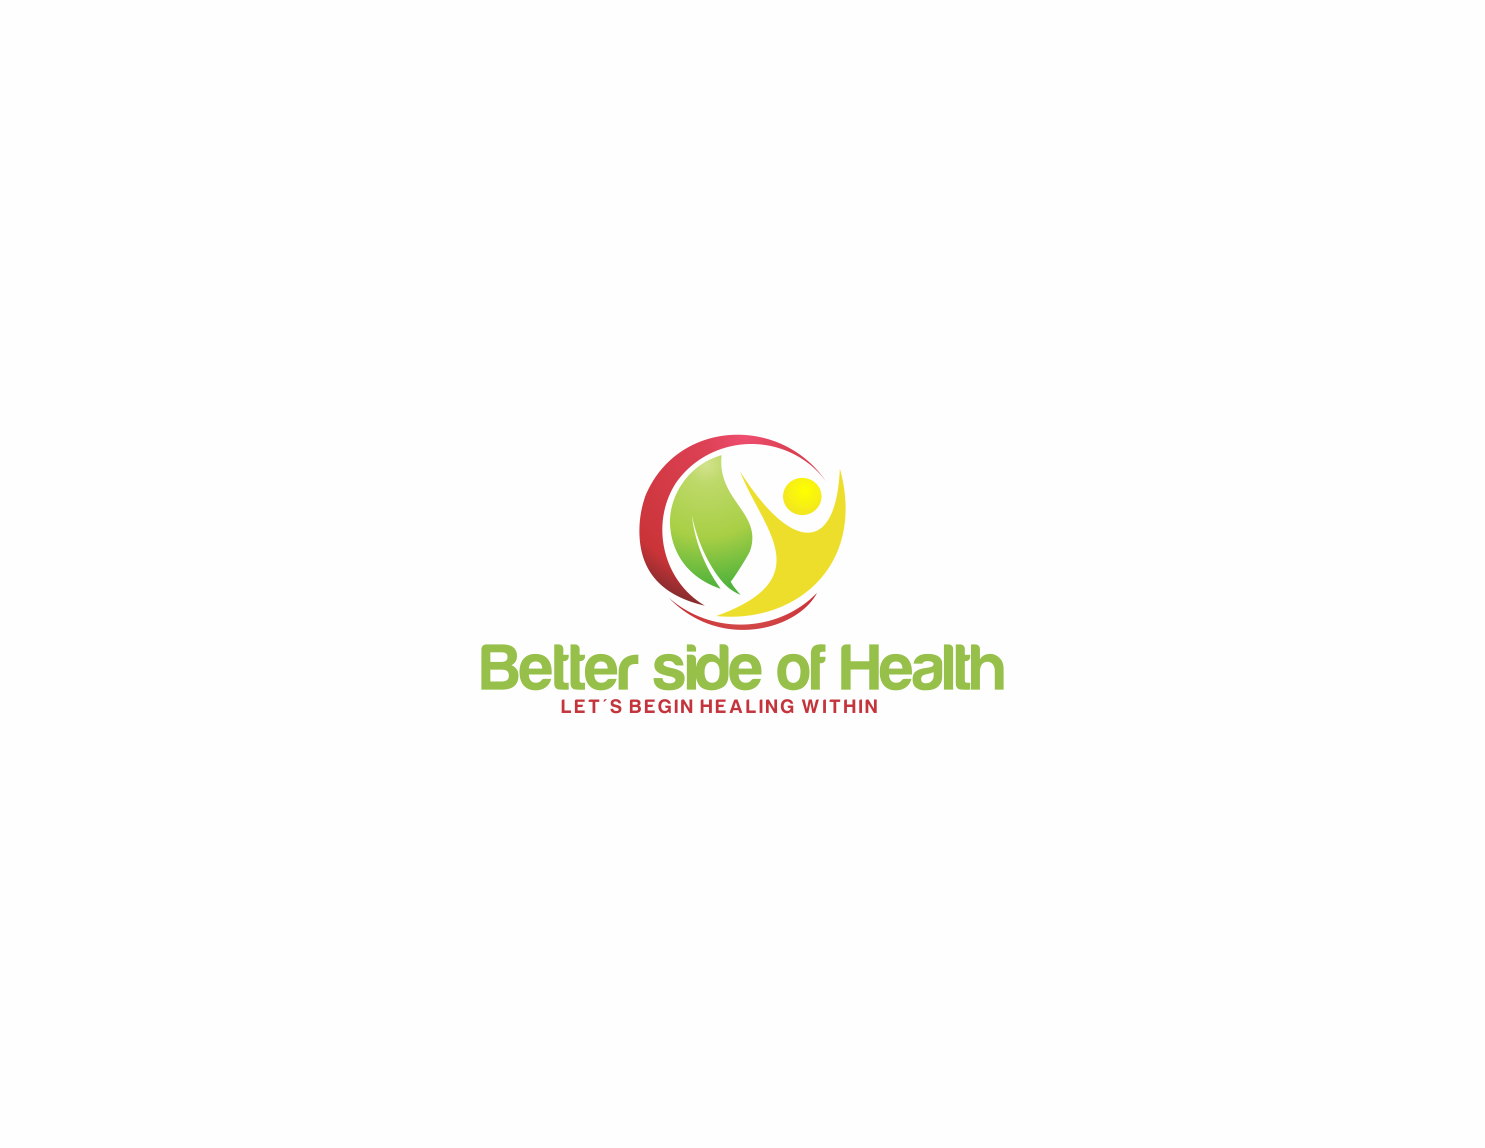 Create a logo that promotes better side of health